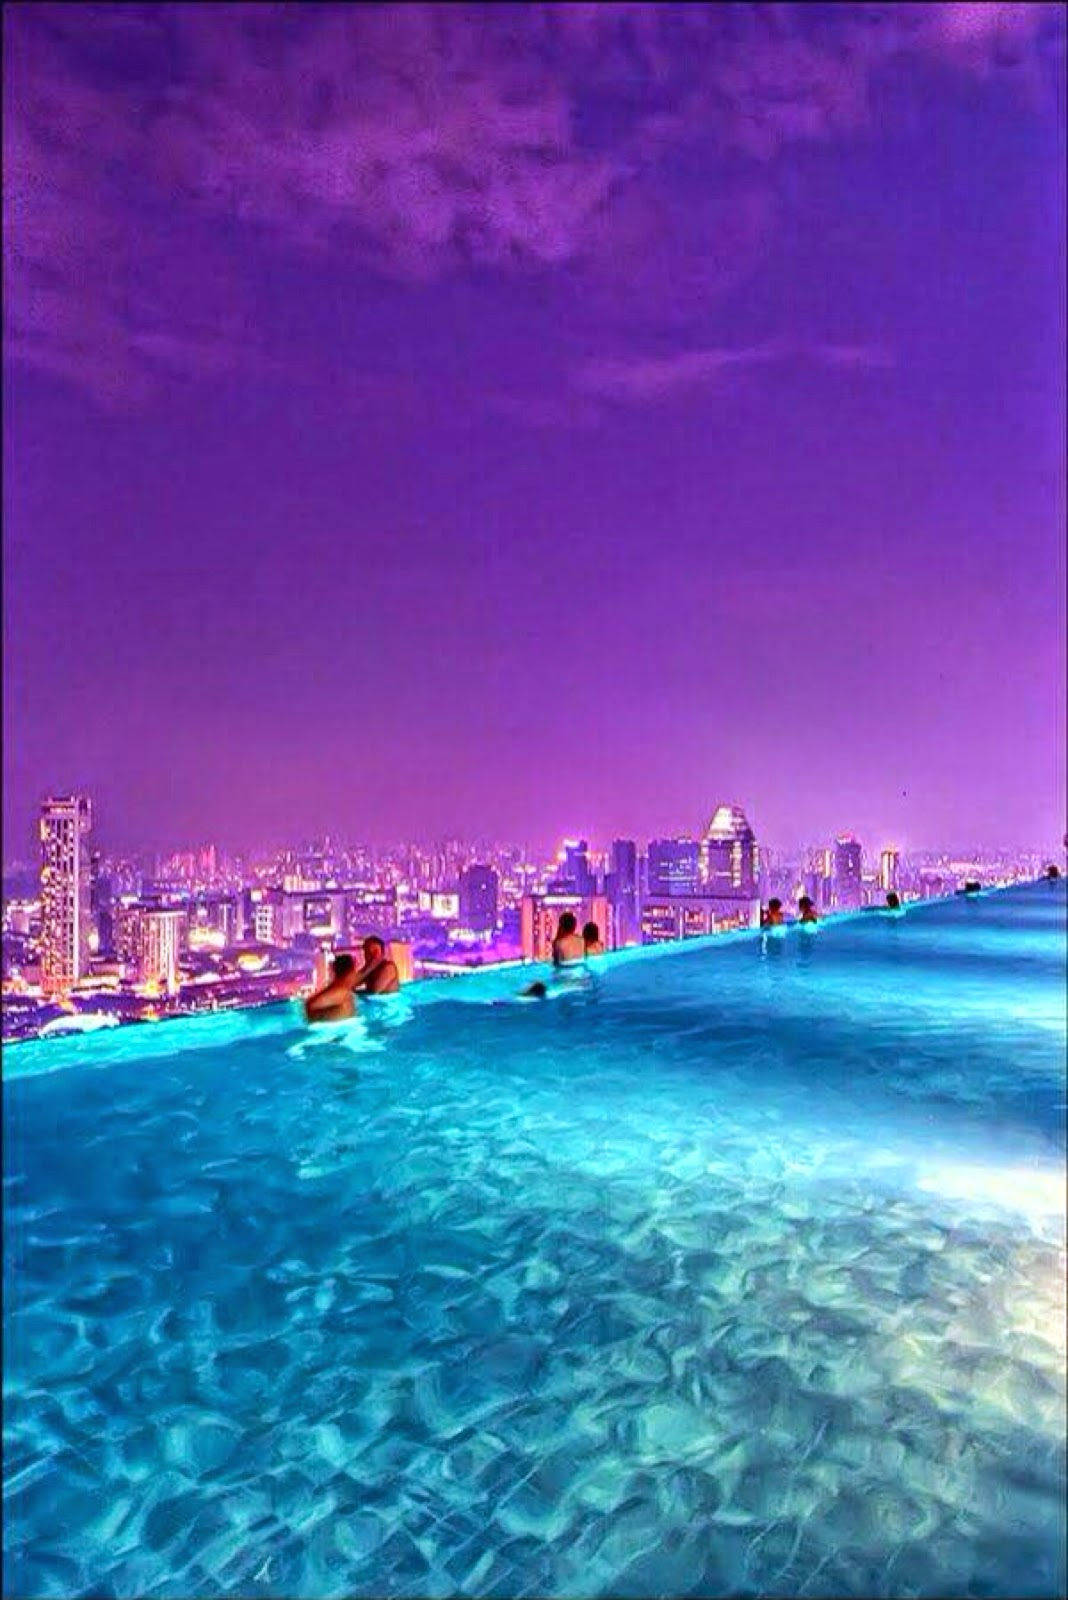 Infinite Pool in Hotel Marina Bay